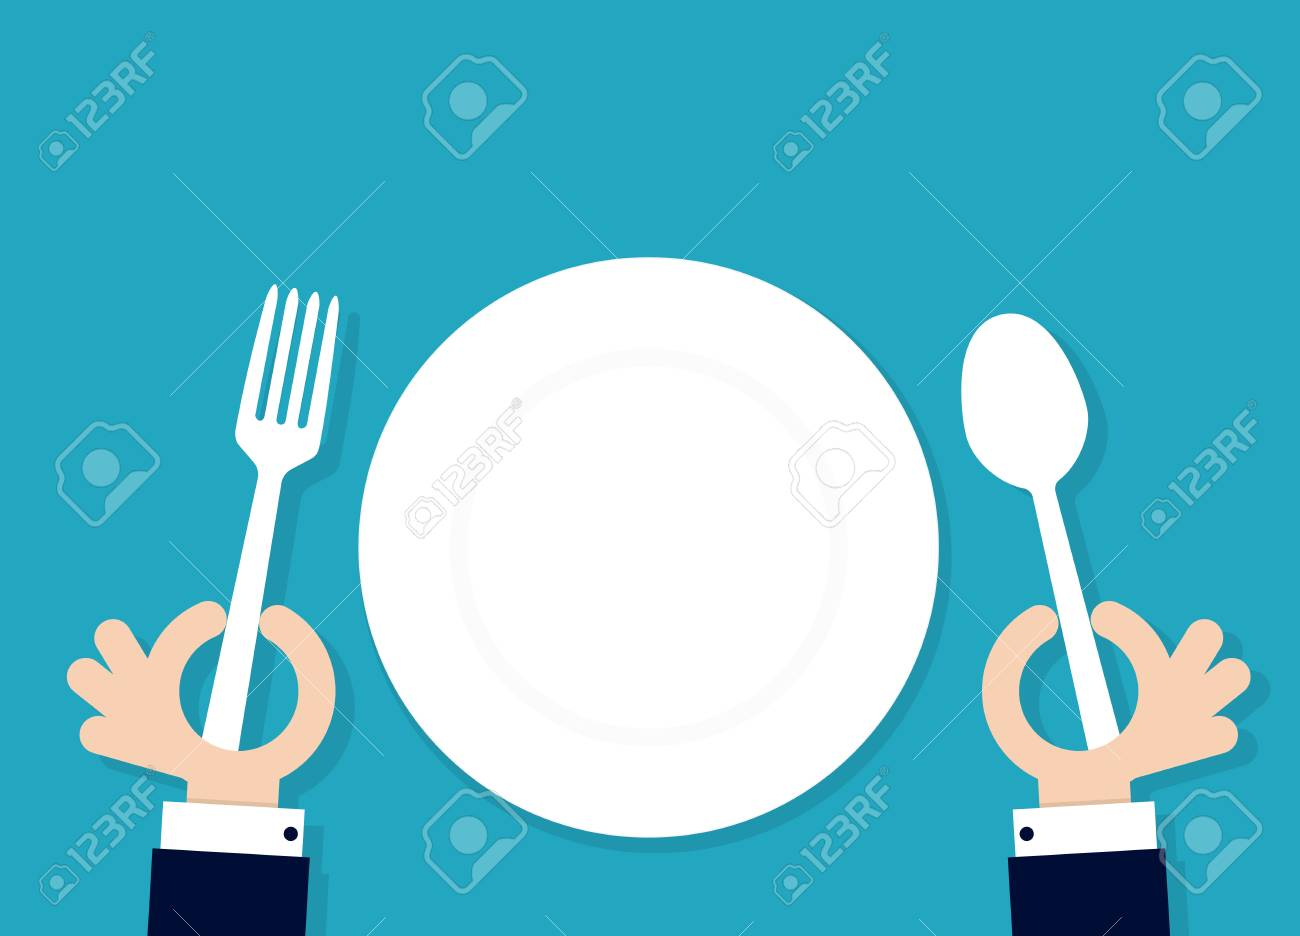 cartoon hahds holding fork and spoon with empty plate. Vector illustration - 82231800